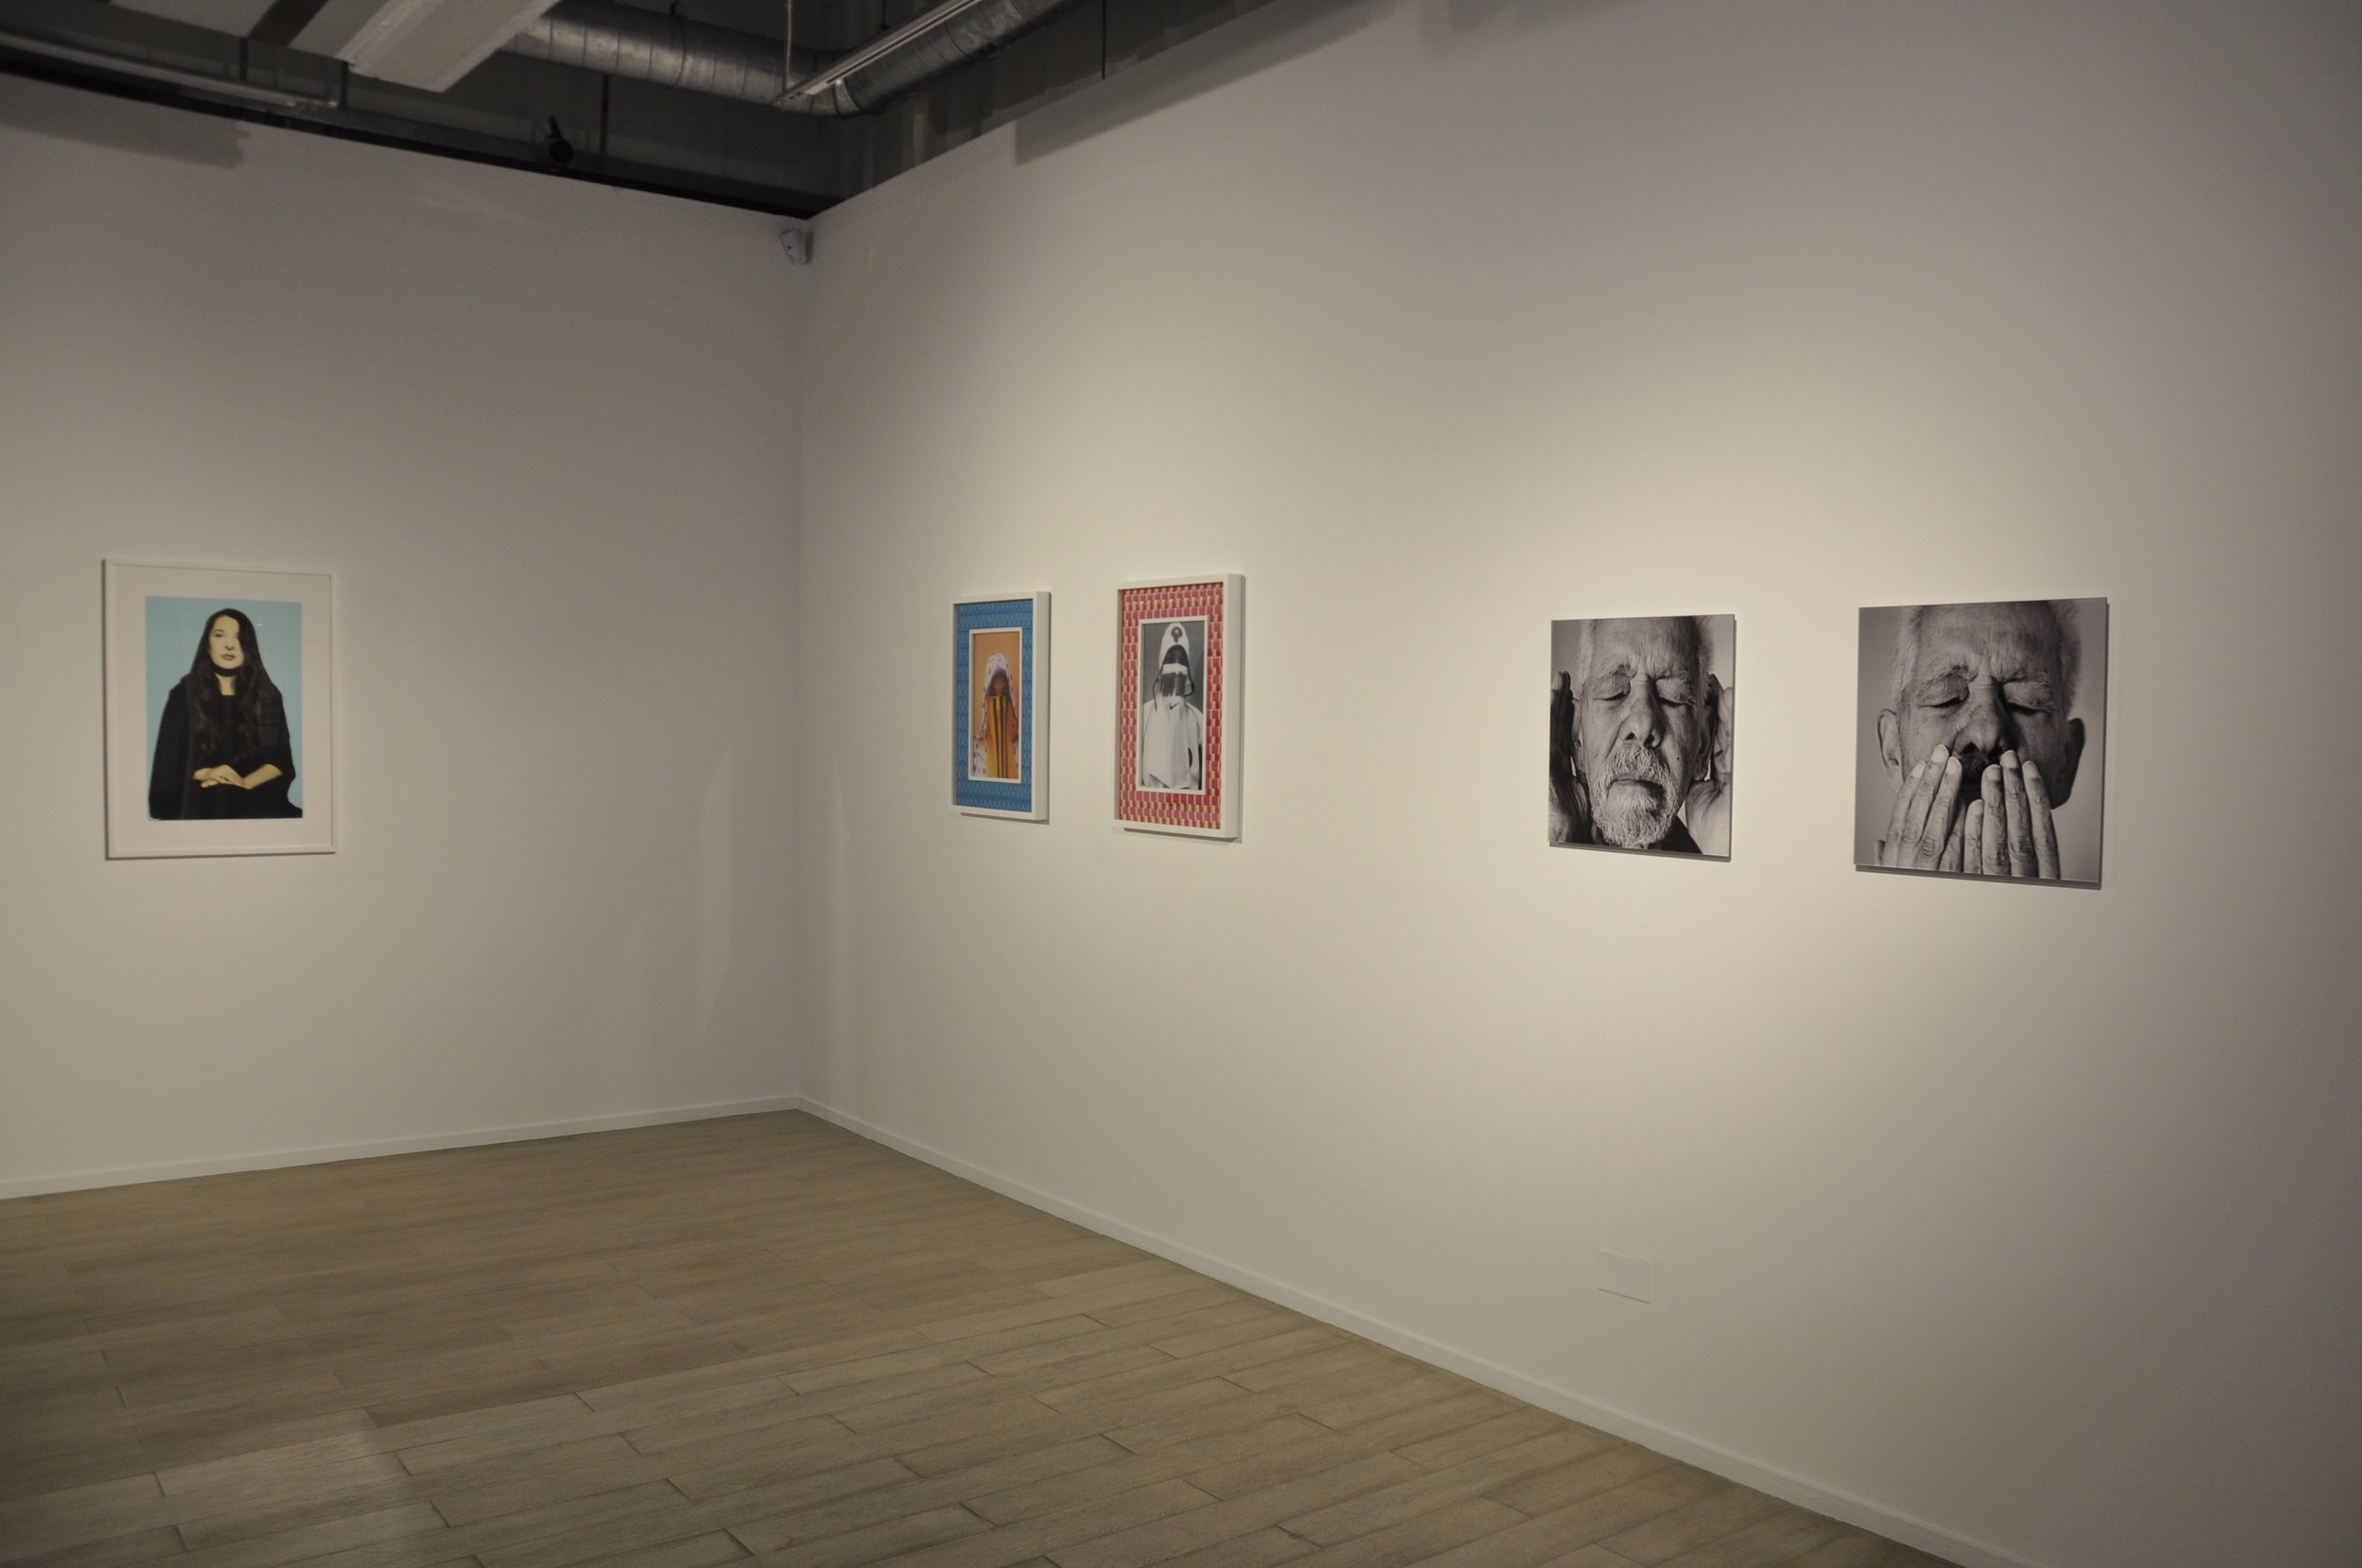 Focus_Group Exhibition_The Third Line_February 2018_Installation view_10.jpg